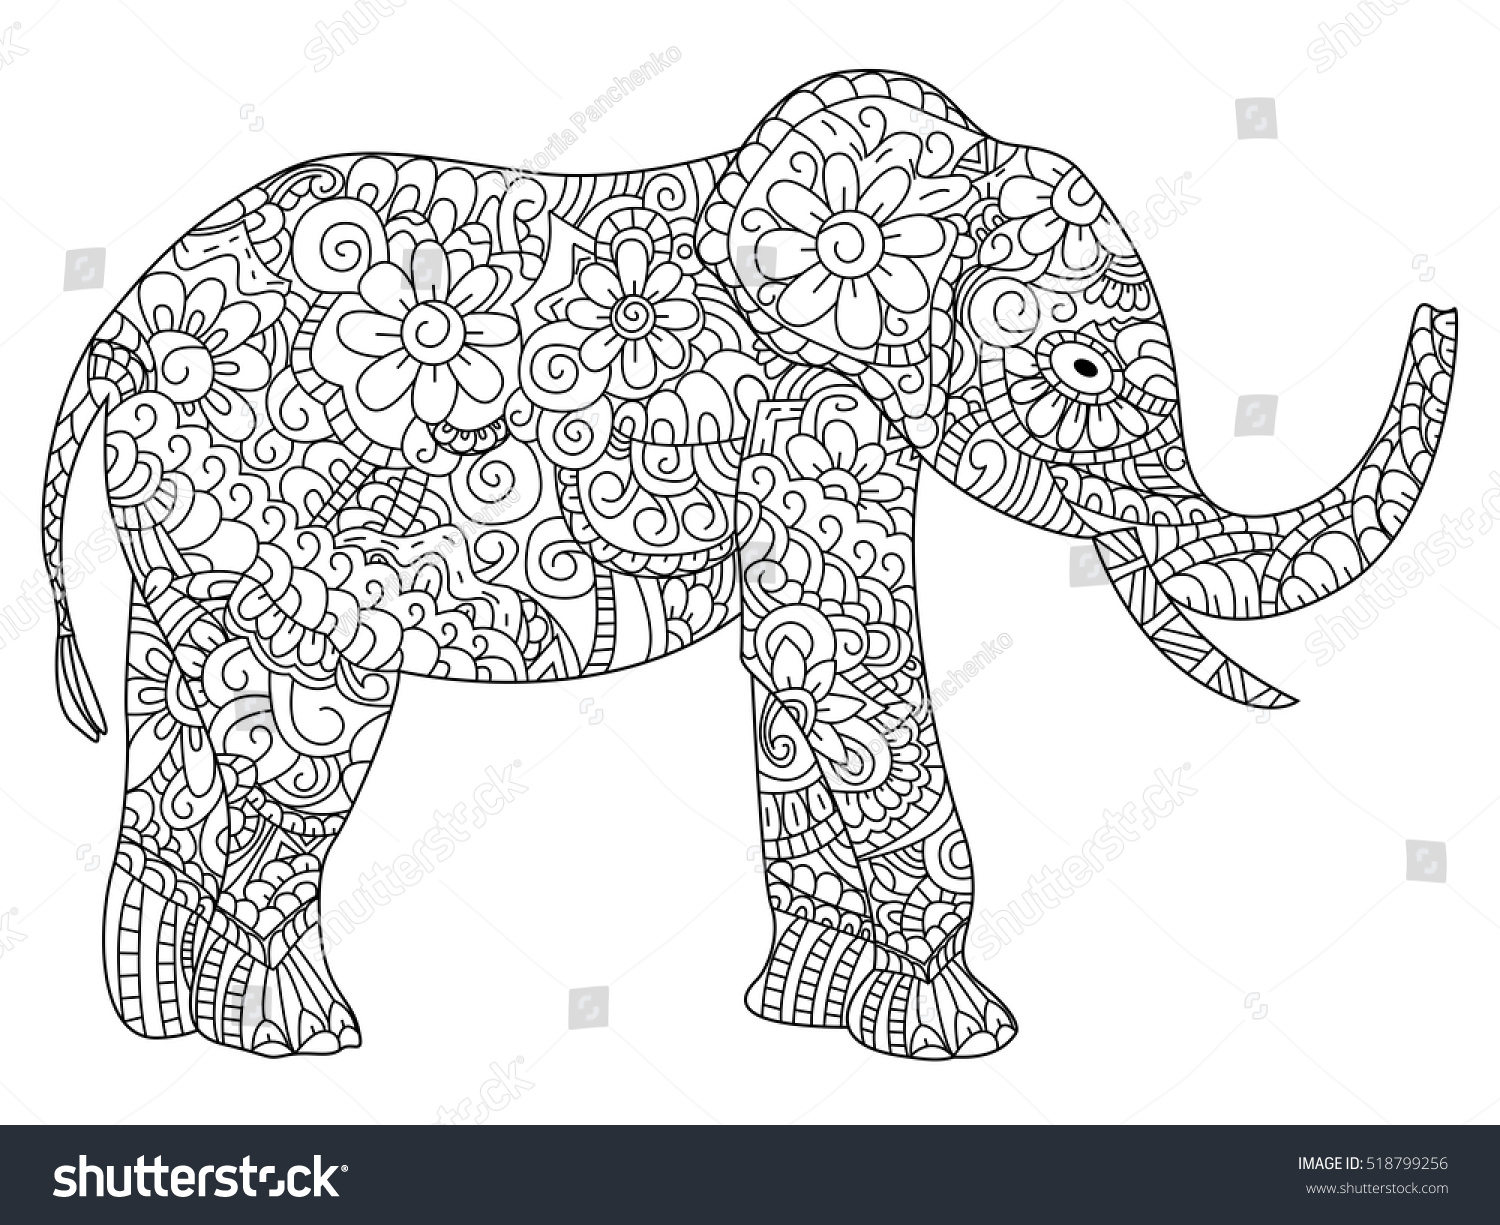 Elephant Animal Coloring Book For Adults Vector Illustration Anti Stress Adult